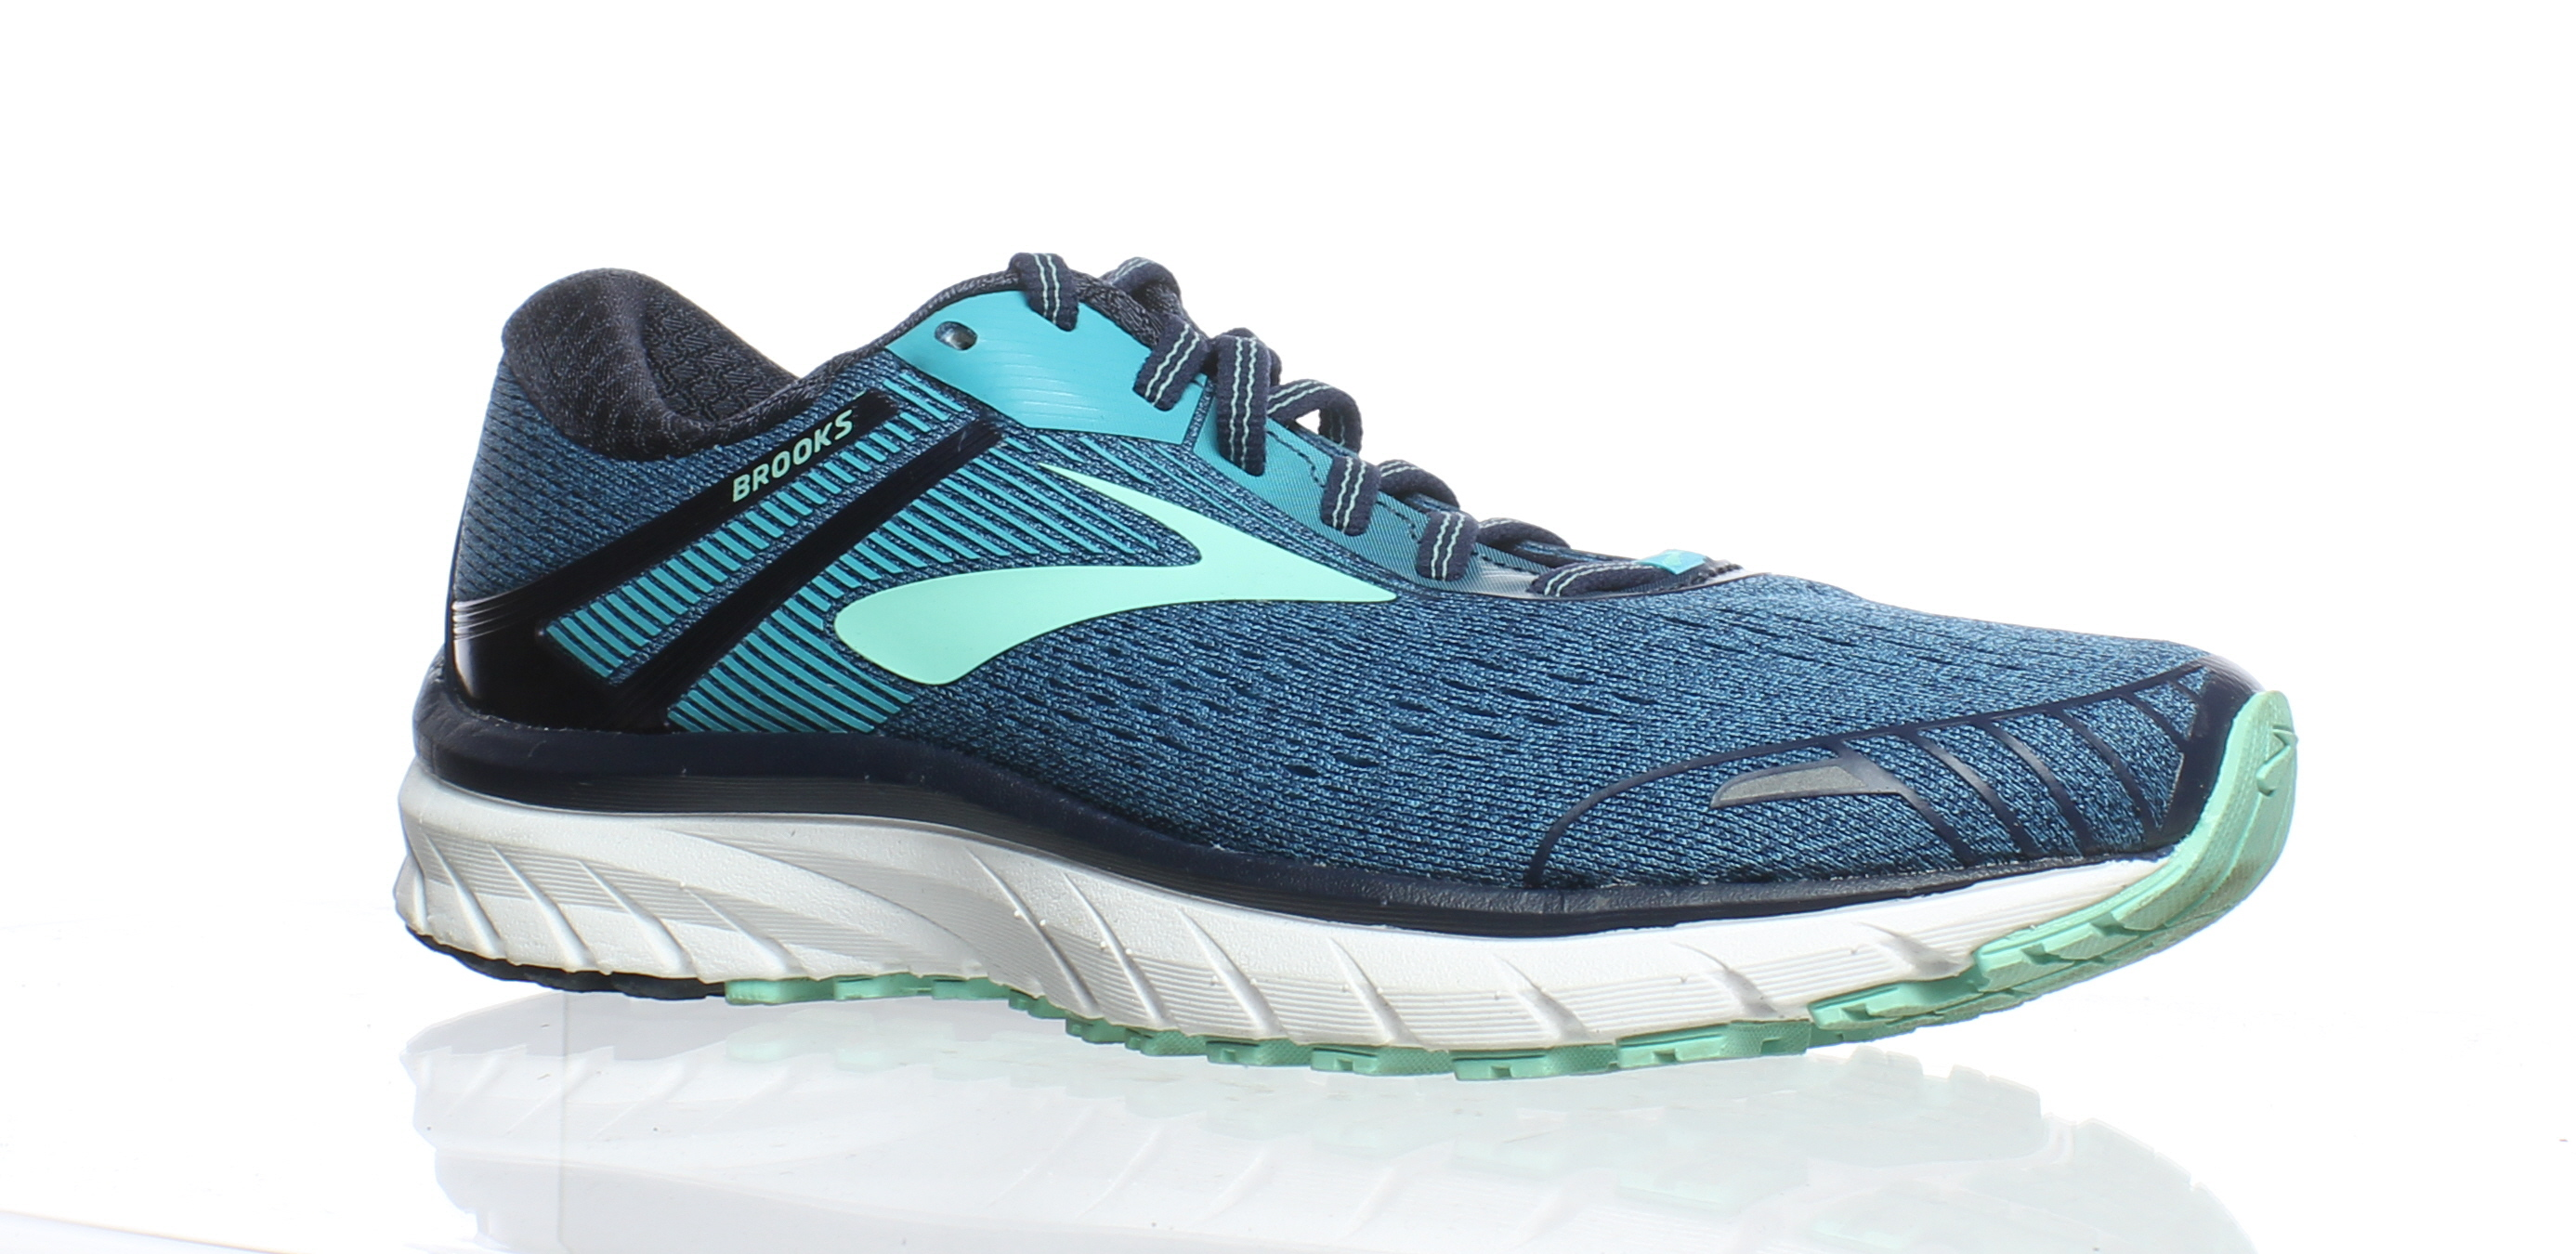 Details about Brooks Womens Adrenaline Gts 18 Navy Teal Mint Running Shoes  Size 8.5 (183171) ecaf91c21a0